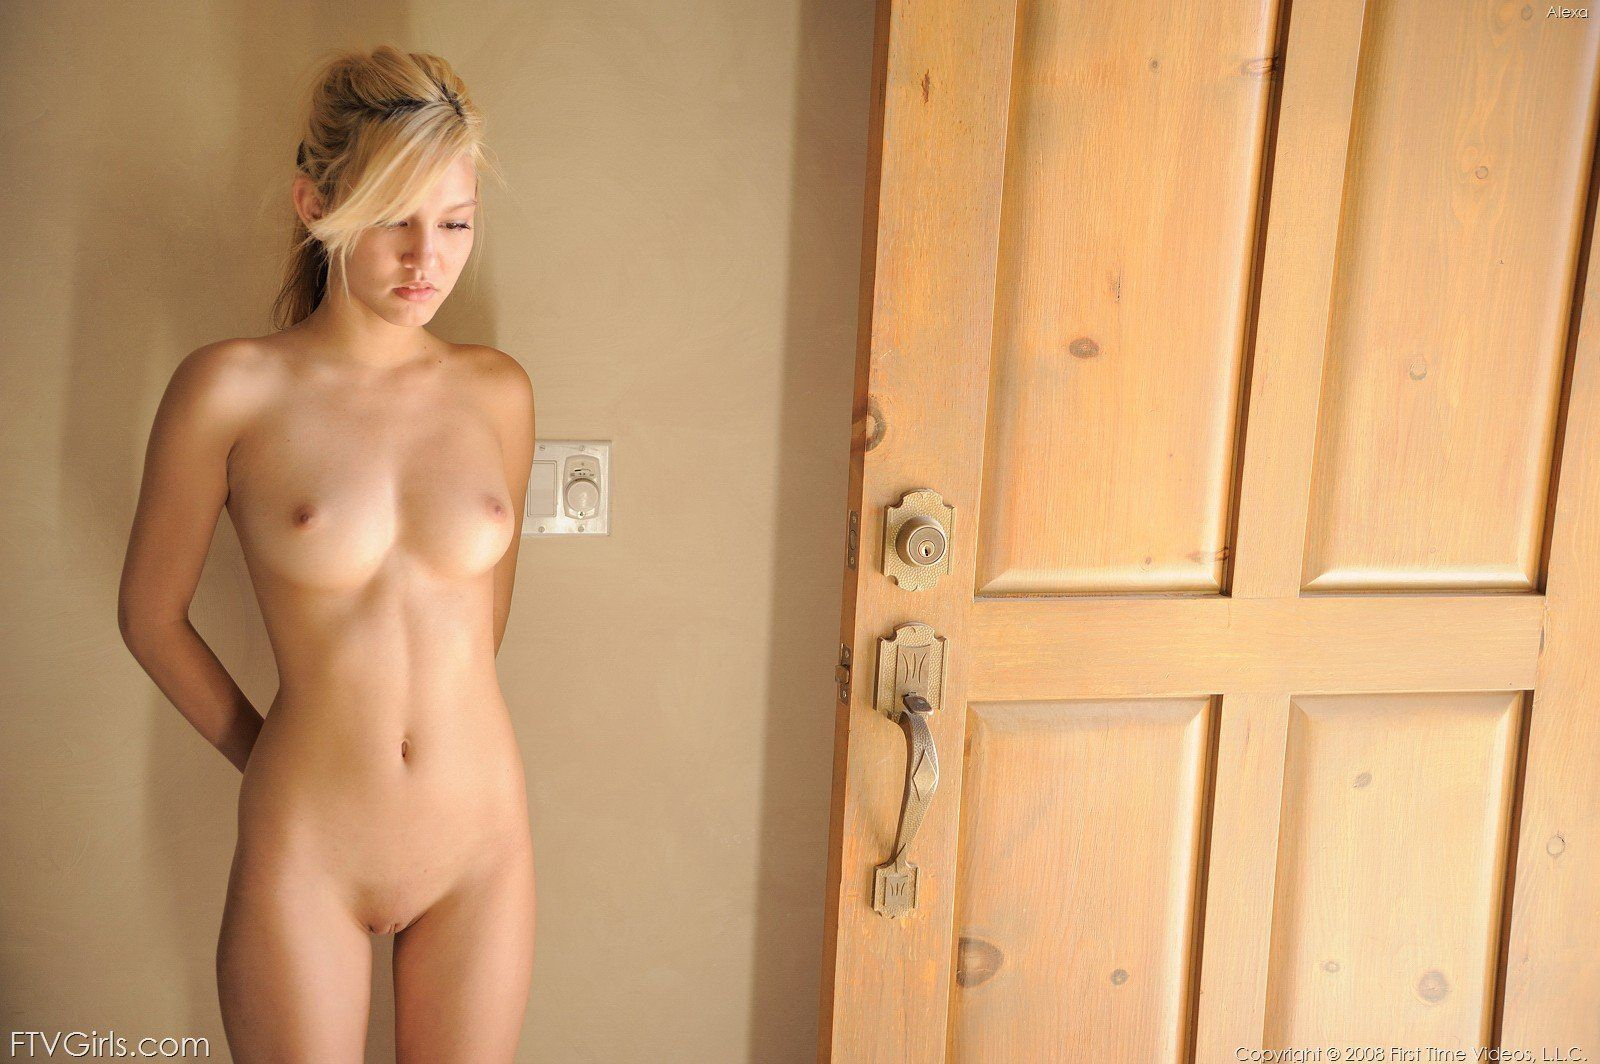 Apologise, but, door next gallery nudes girl assured, what lie